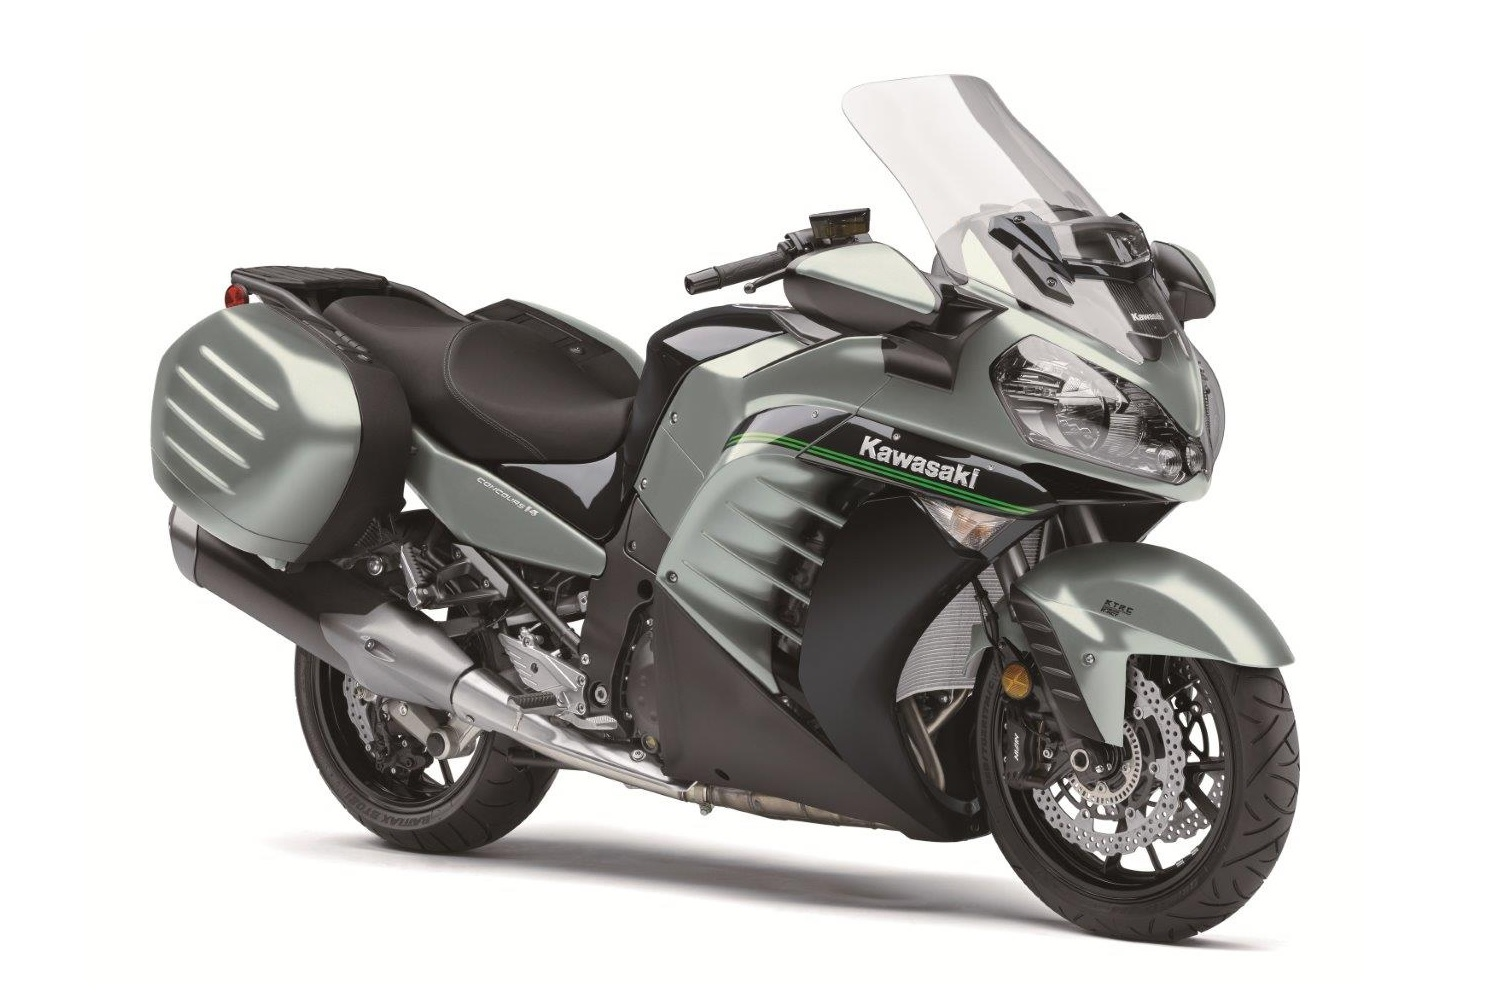 2020 Kawasaki Concourse 14 Side View